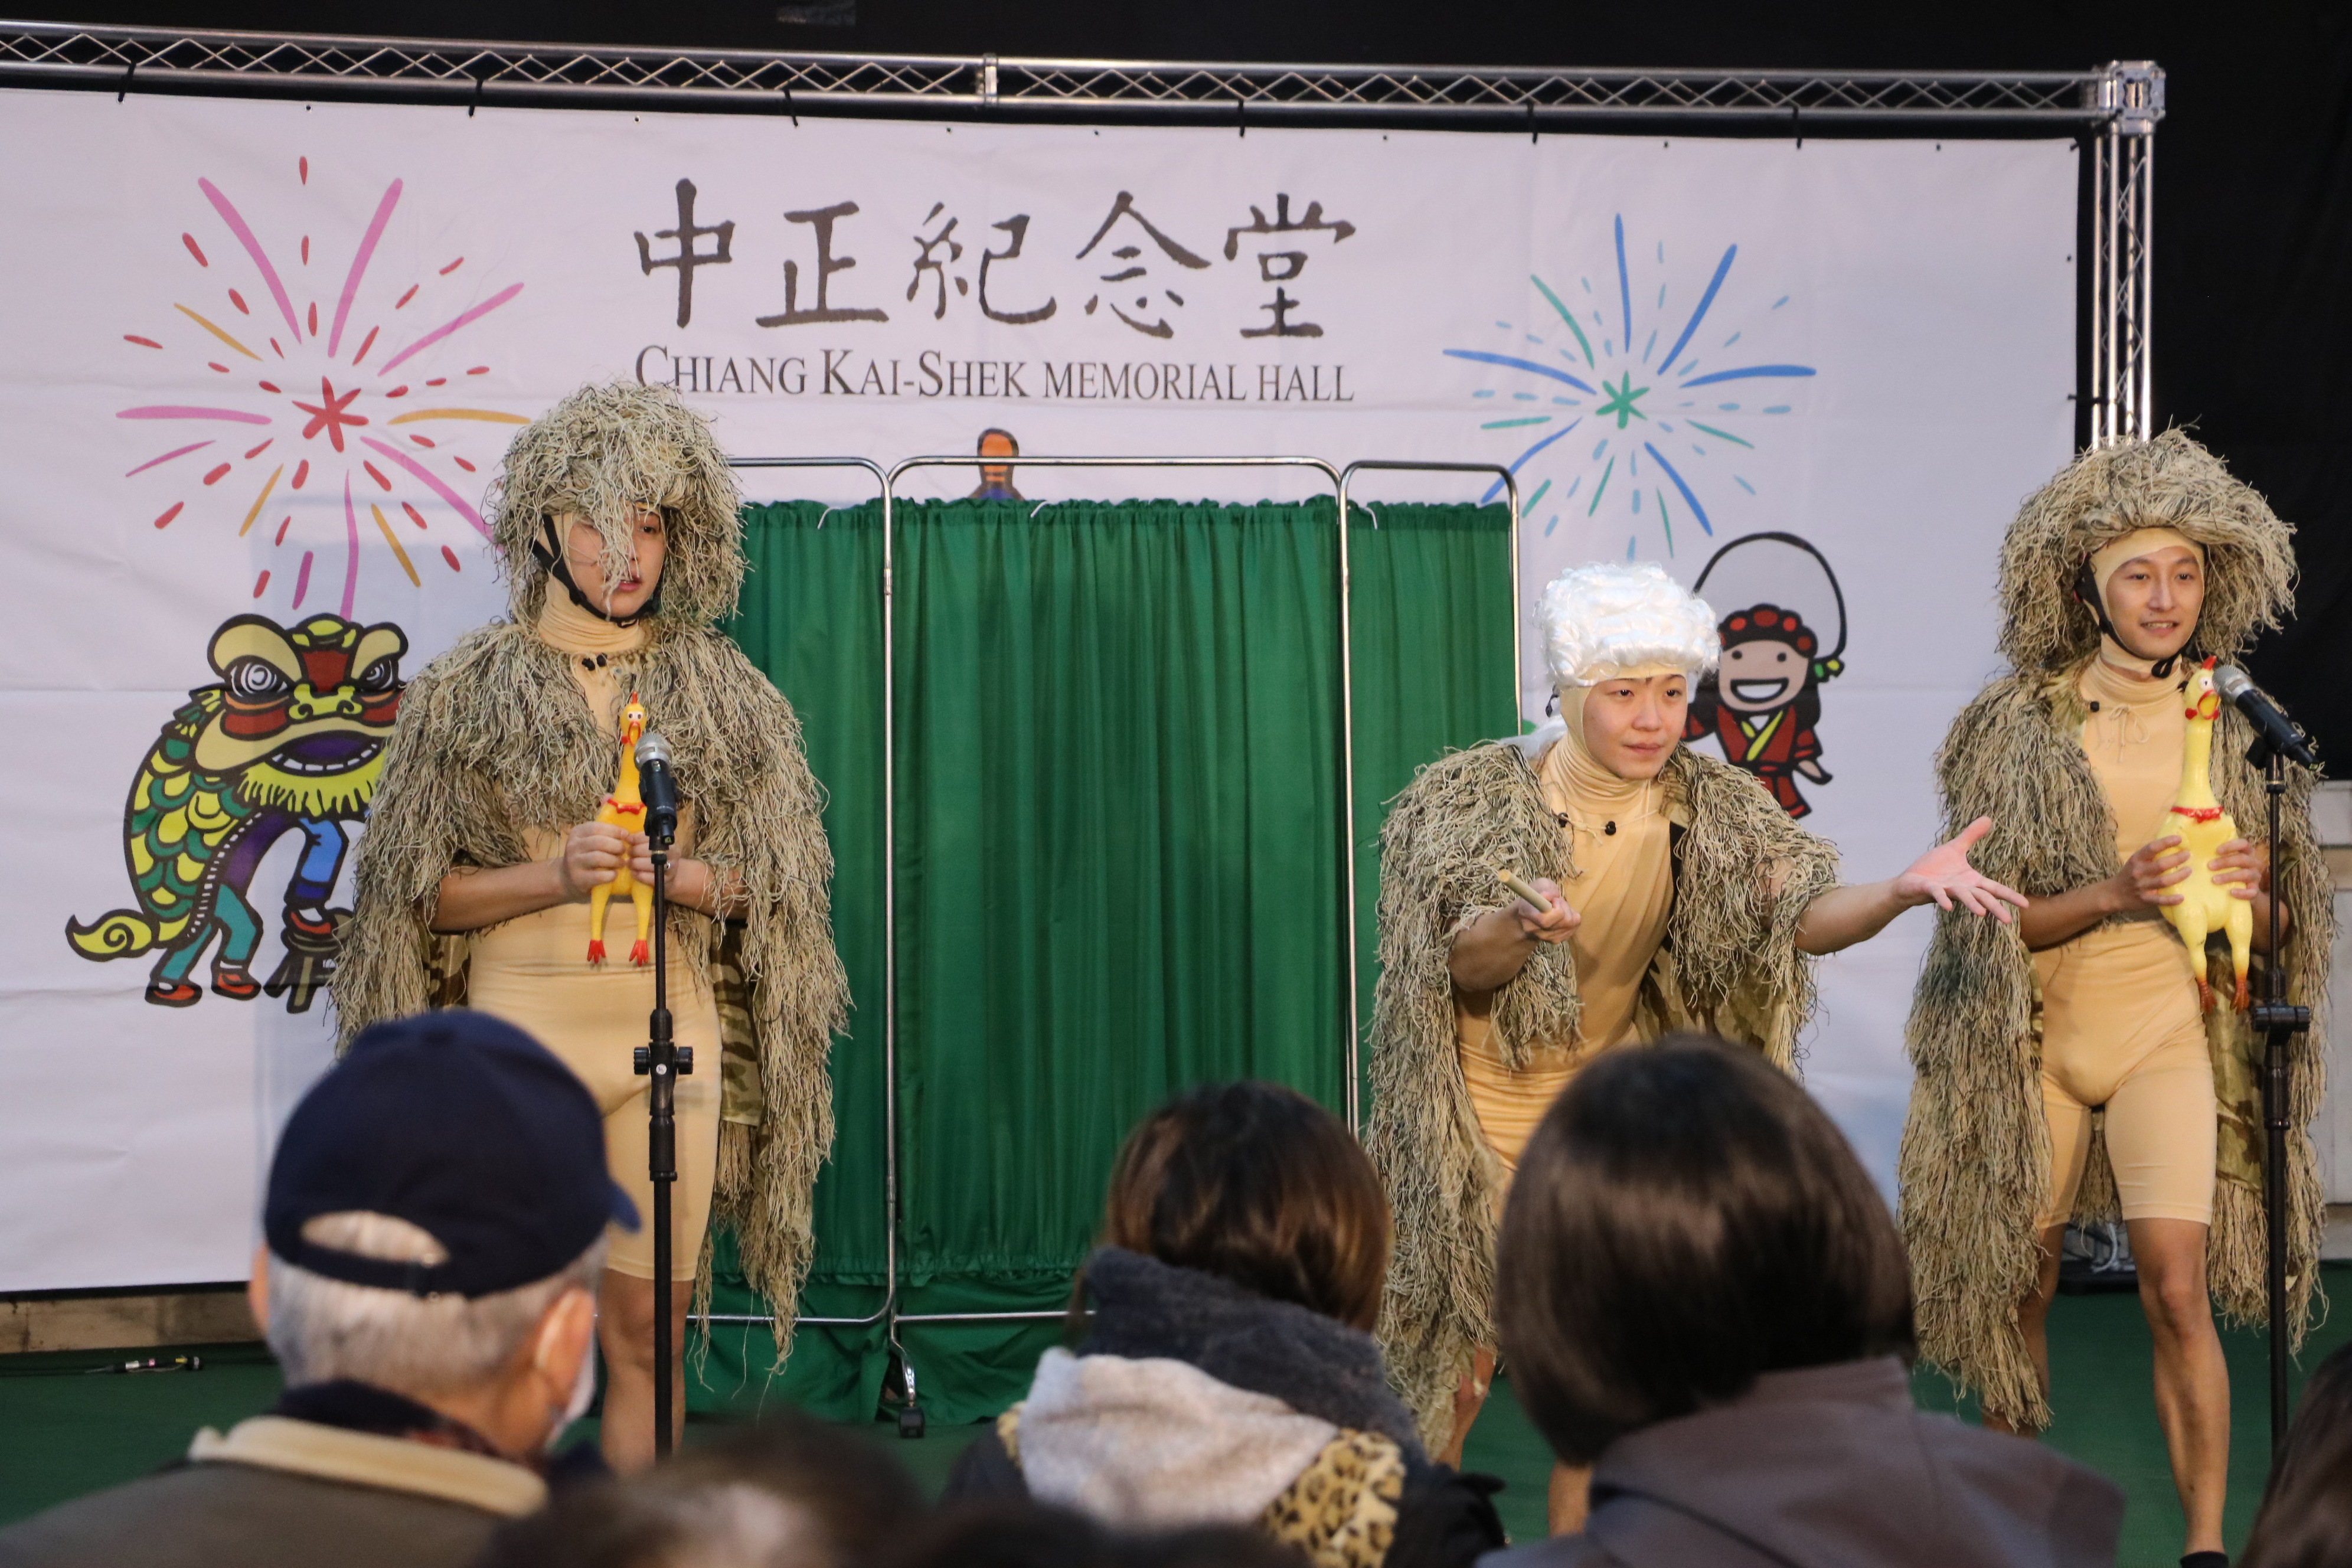 20210109 Democracy Boulevard: artistic and cultural performance